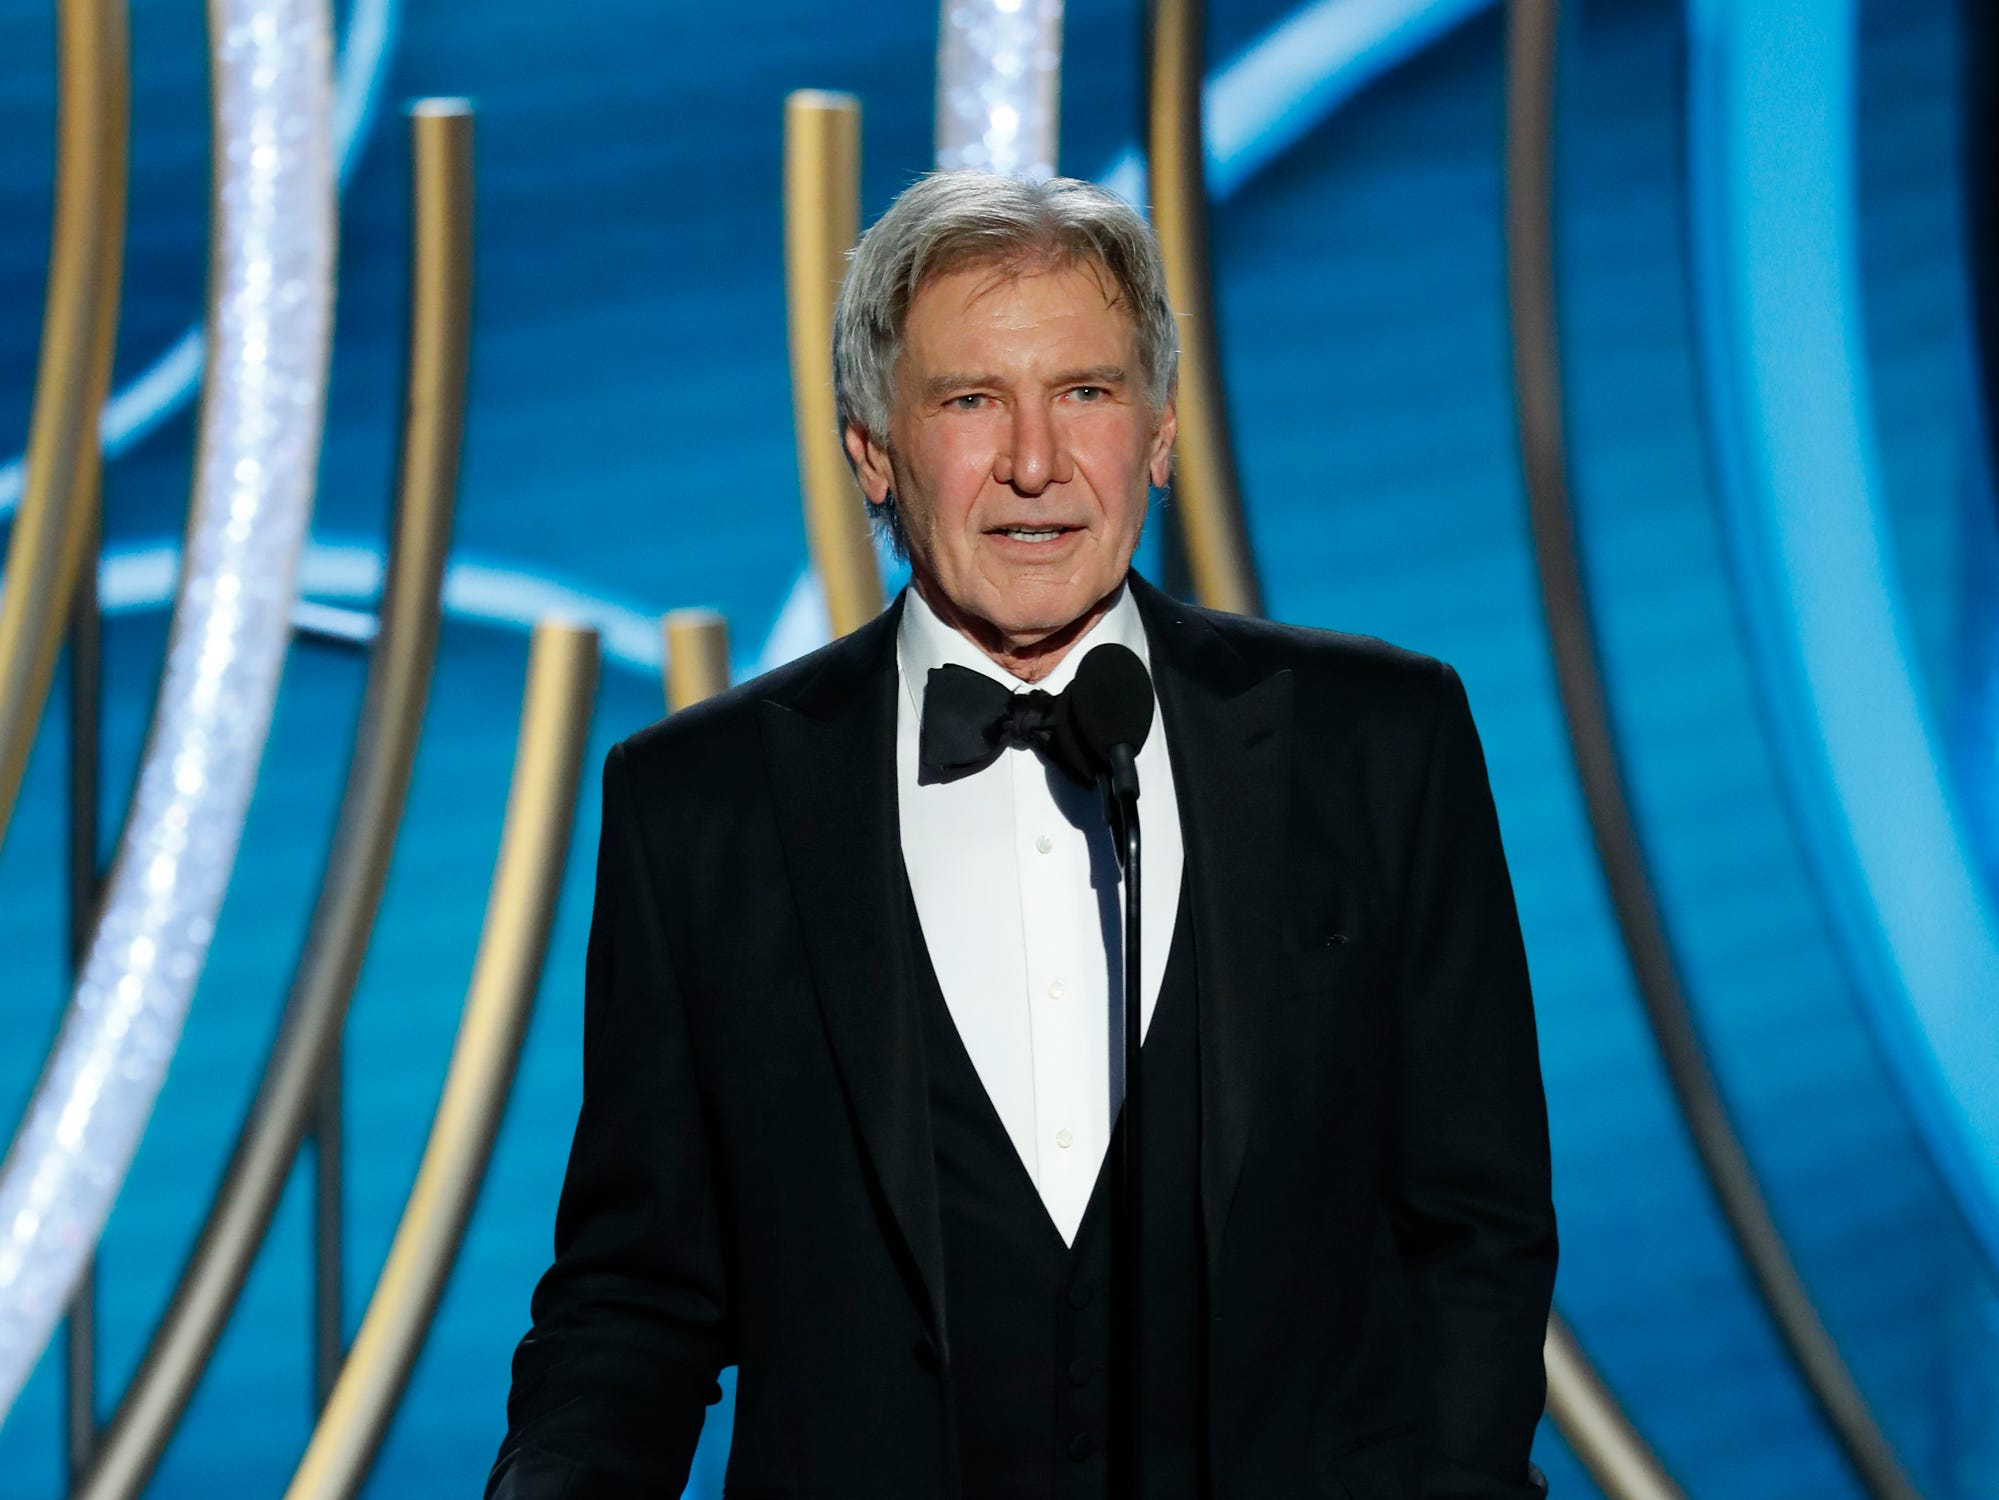 This image released by NBC shows presenter Harrison Ford during the 76th Annual Golden Globe Awards at the Beverly Hilton Hotel.